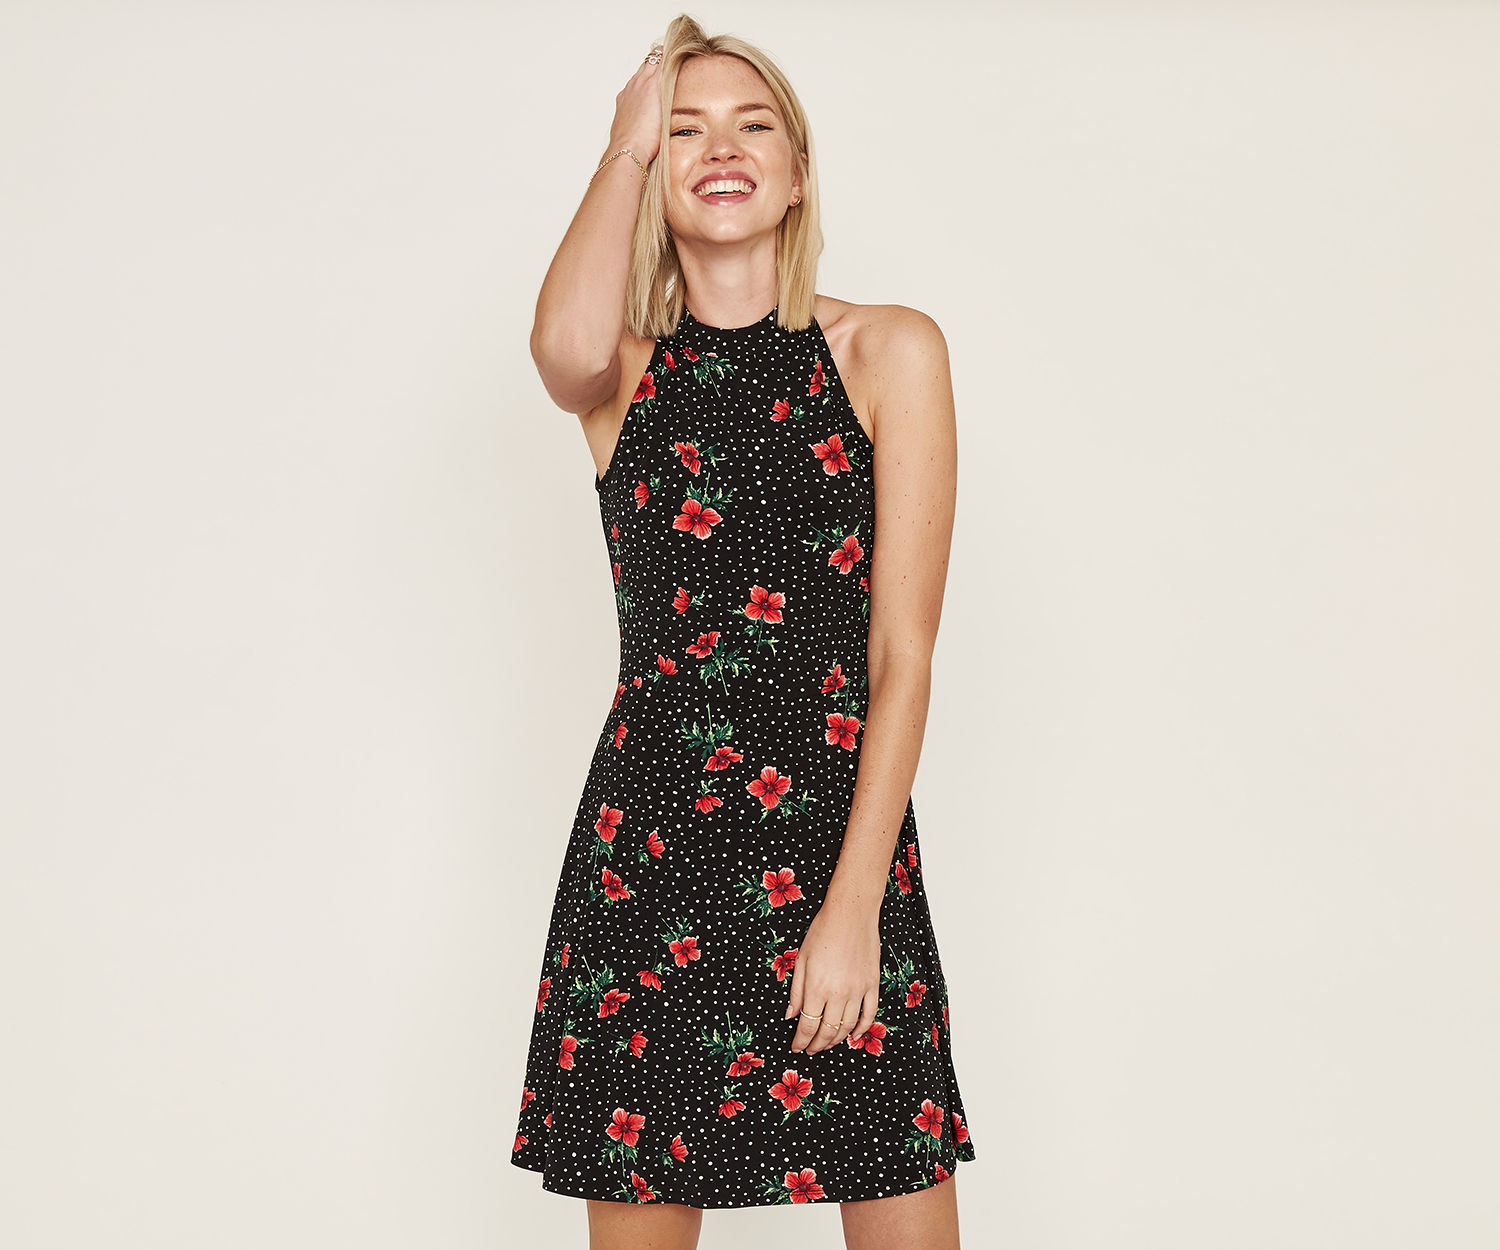 Oasis Black Poppy Flippy Dress - UK style blog